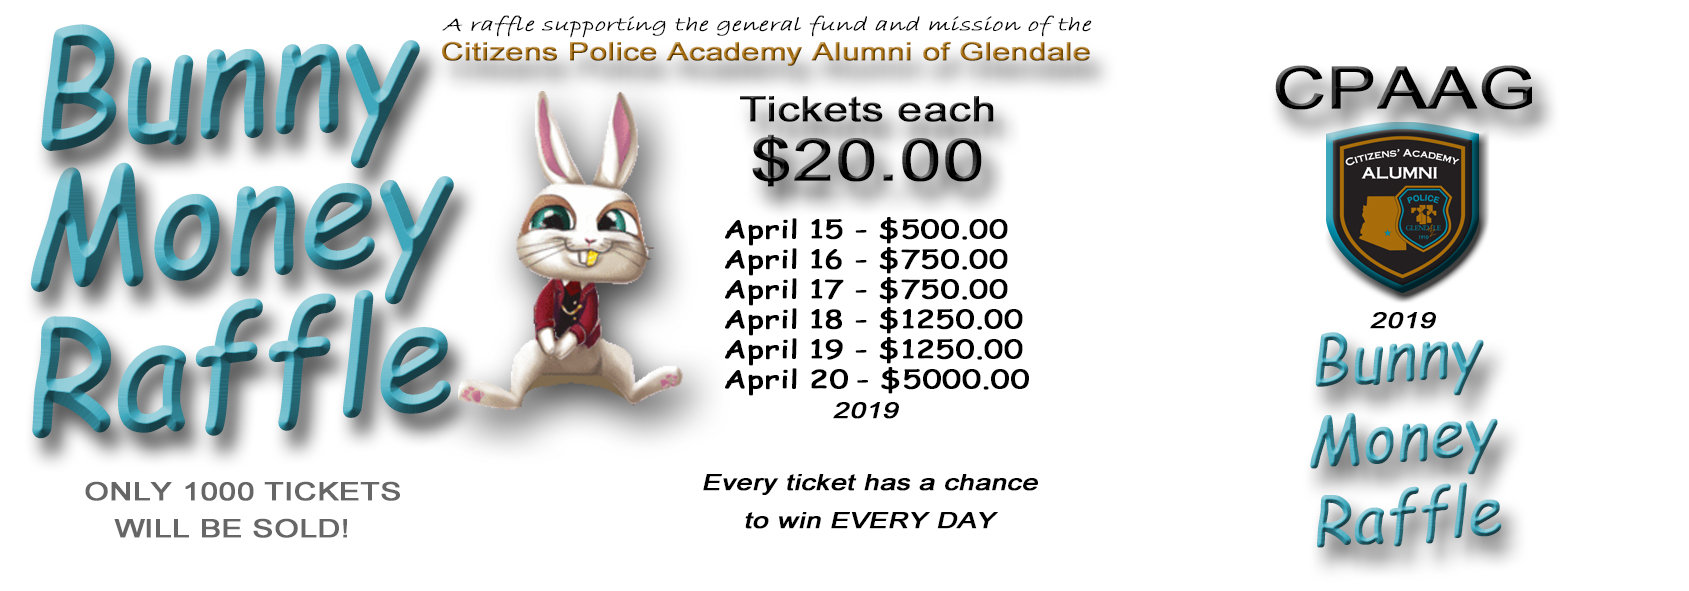 Bunny Money Raffle Ticket